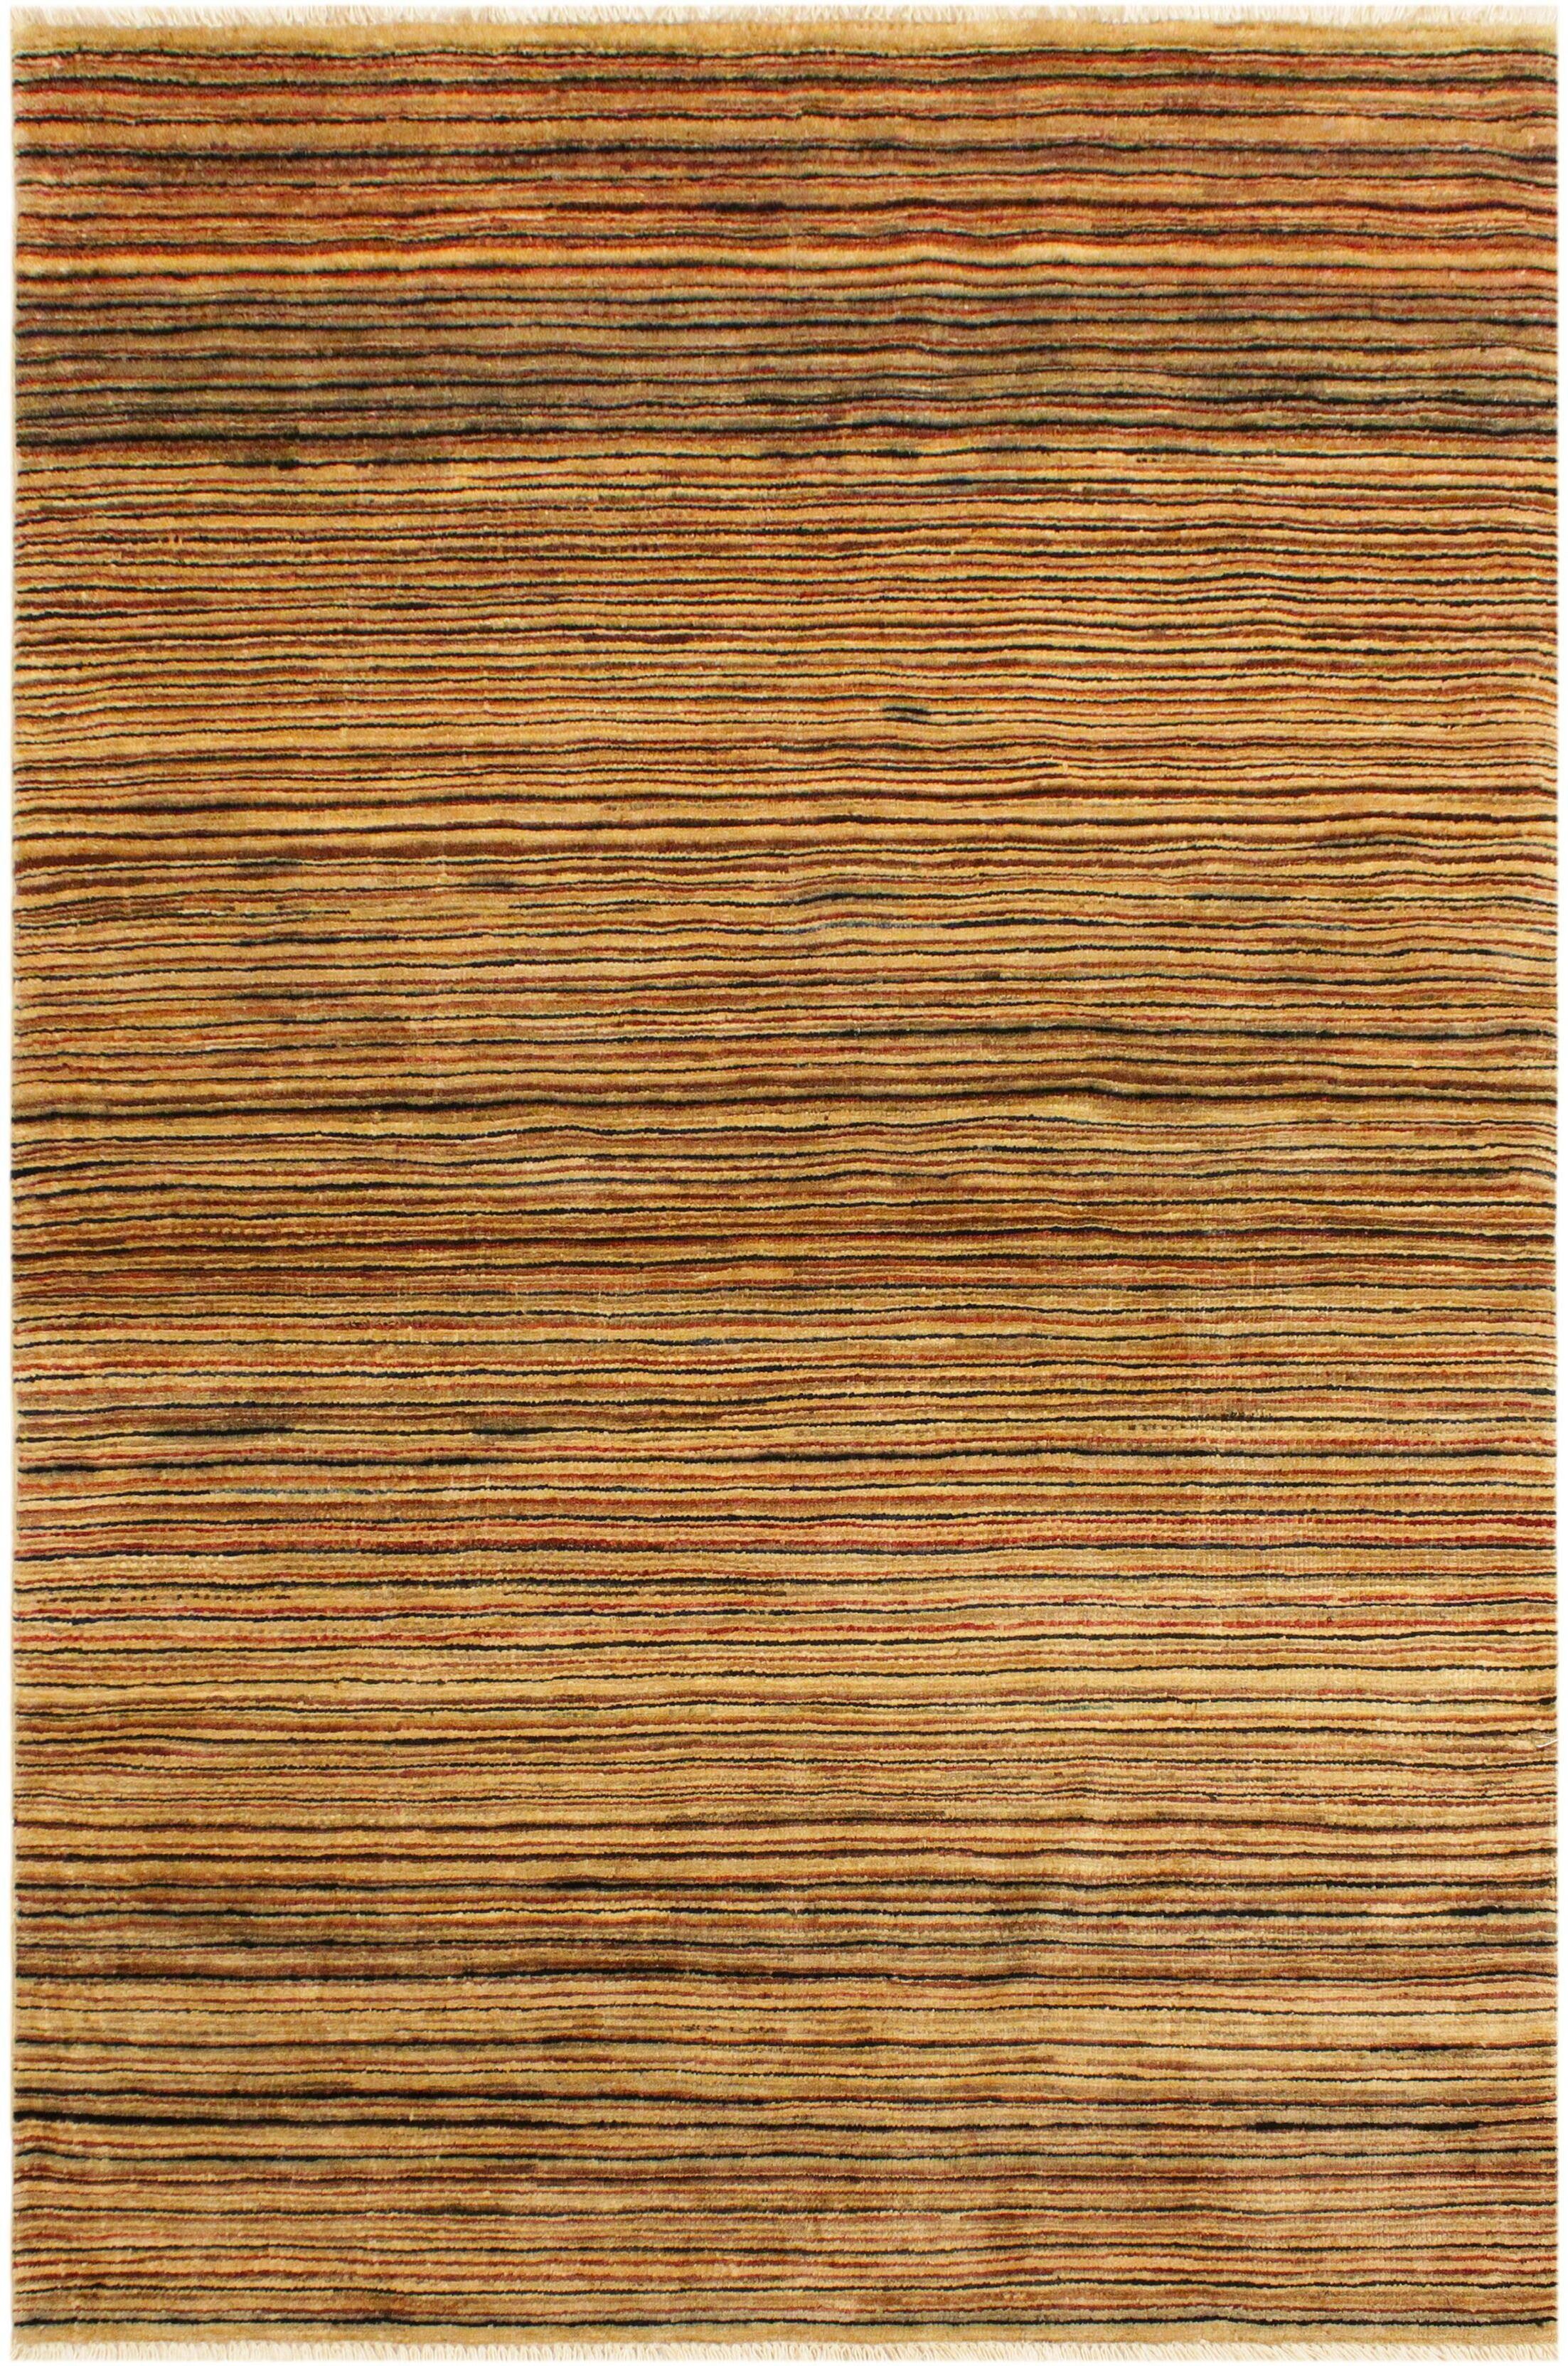 One-of-a-Kind Milo Hand-Knotted Wool Tan/Brown Area Rug